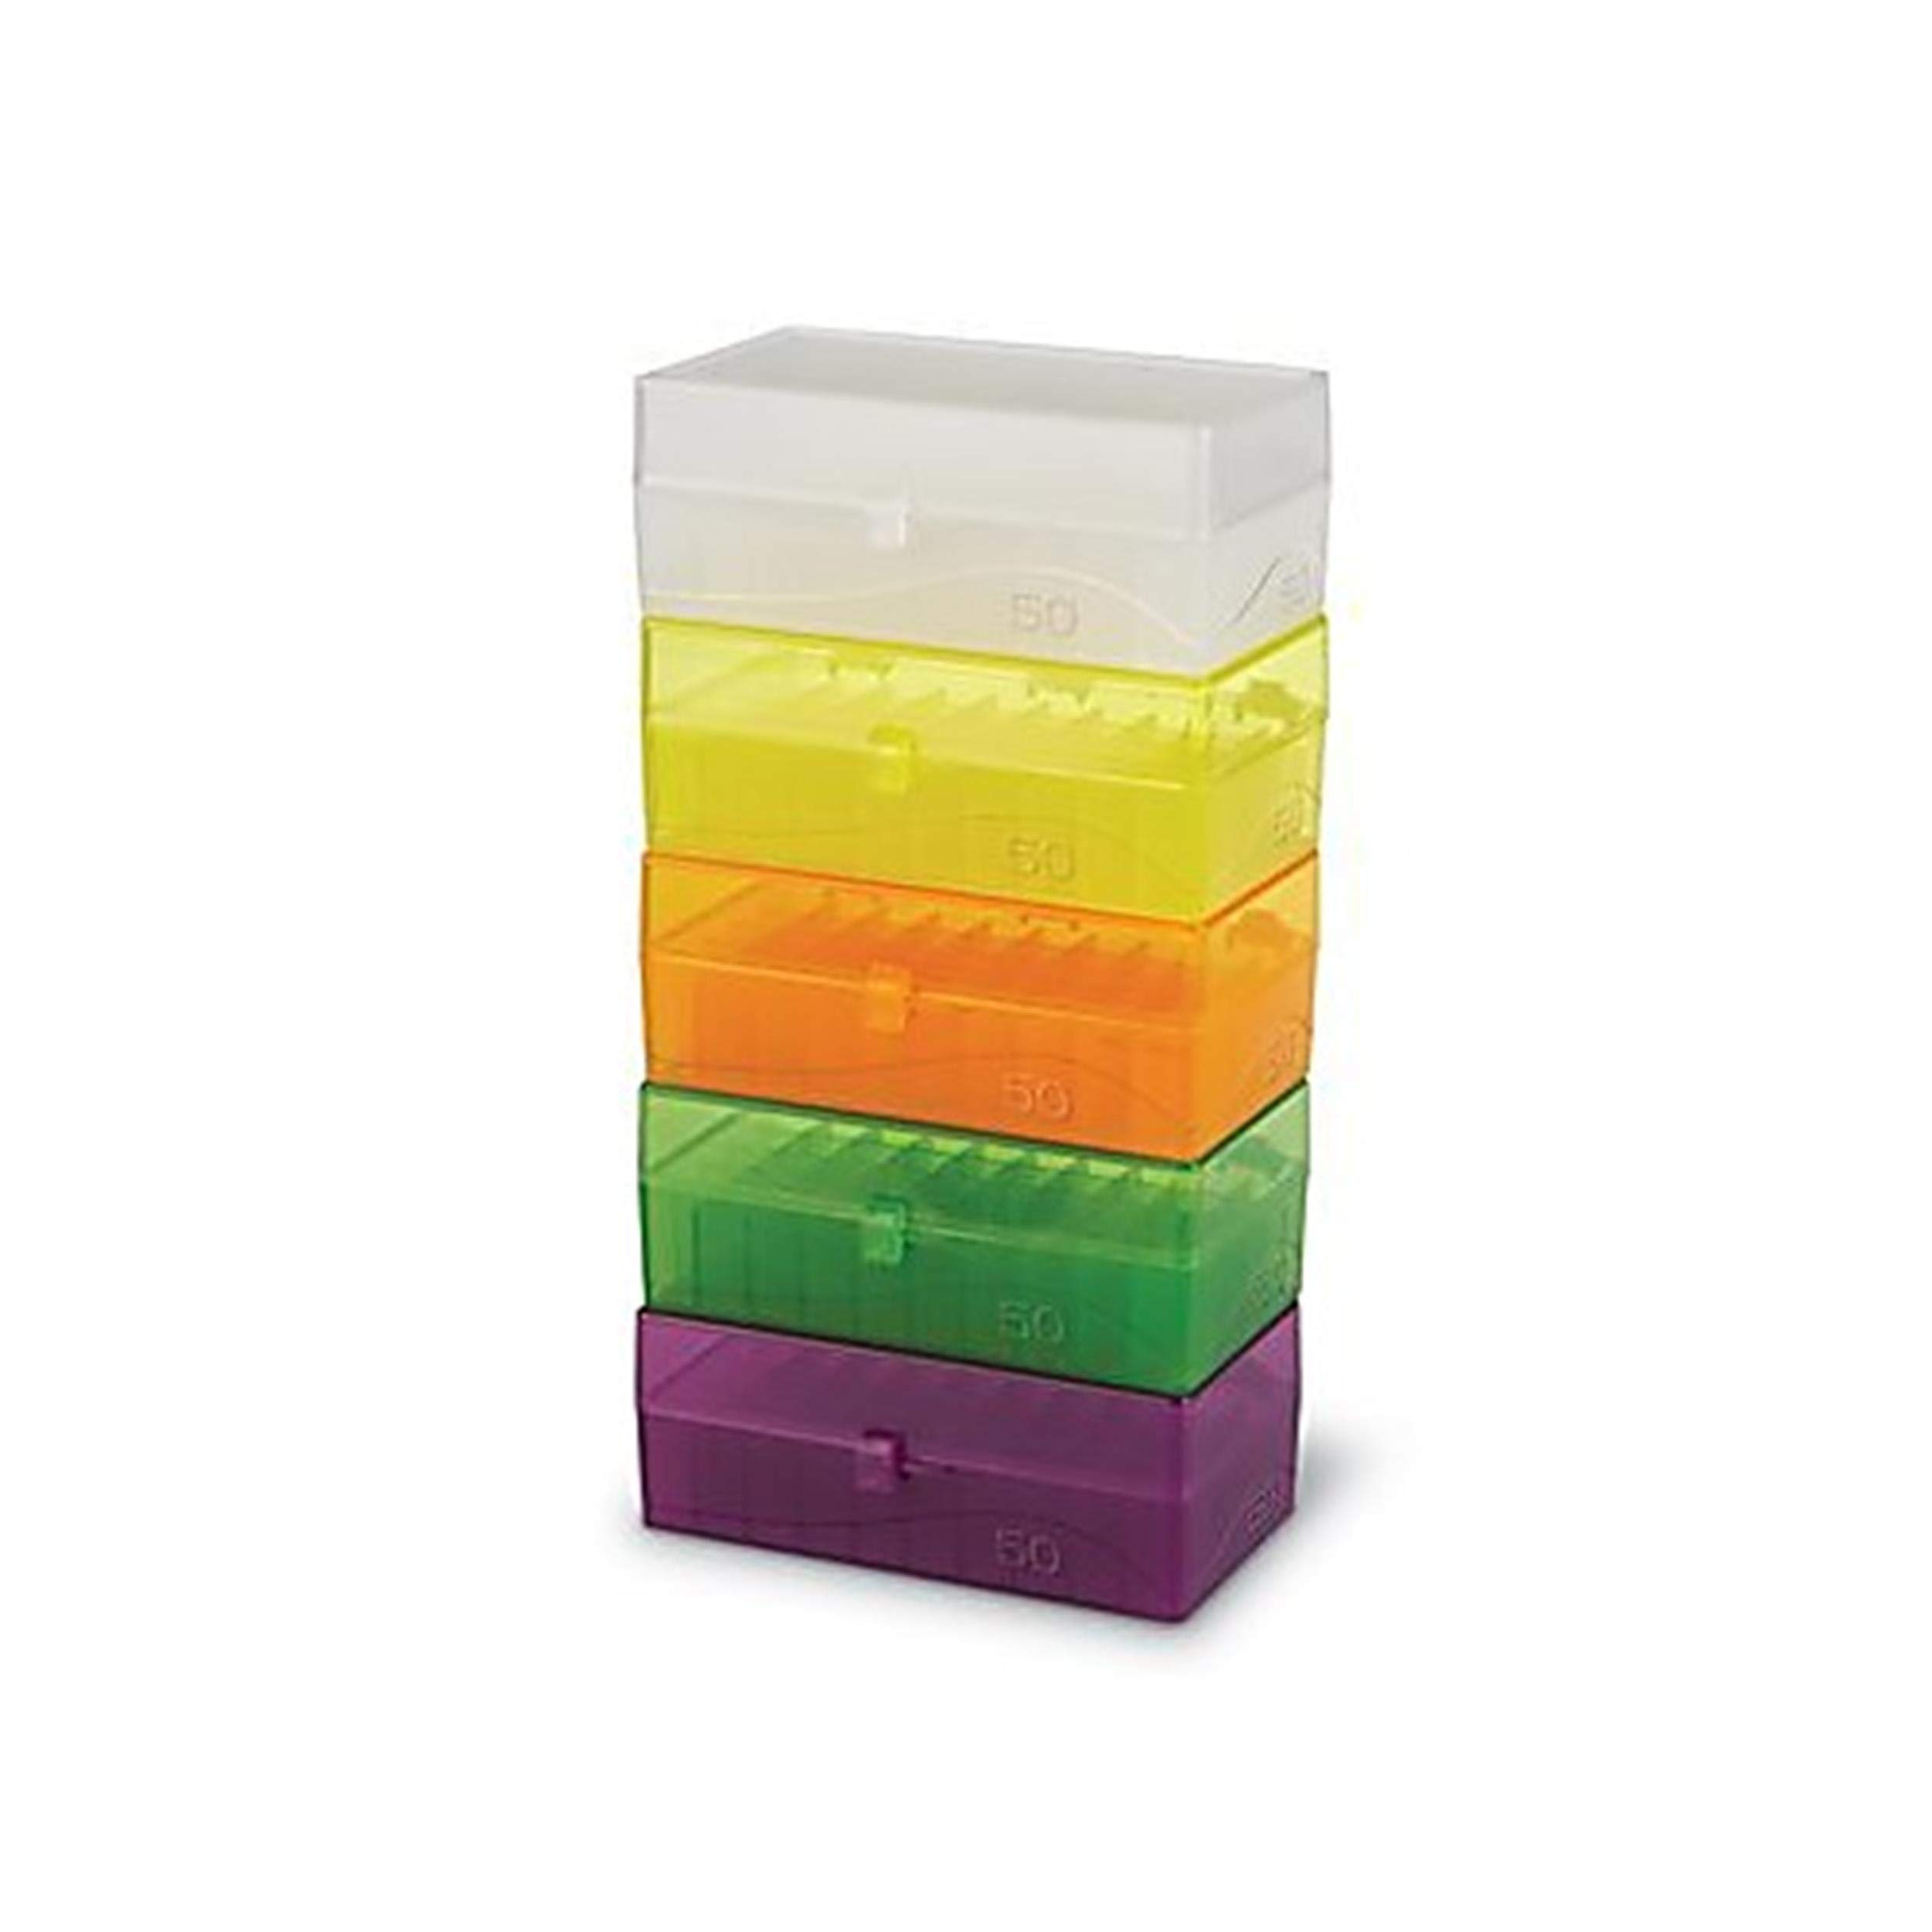 Heathrow Scientific HS120033 50 Well Microtube Storage Box, Cryogenic Box, Tube Storage, 1.5mL/2.0mL Tubes,Polypropylene, 5 Assorted Colors, (5/pk) by Heathrow Scientific